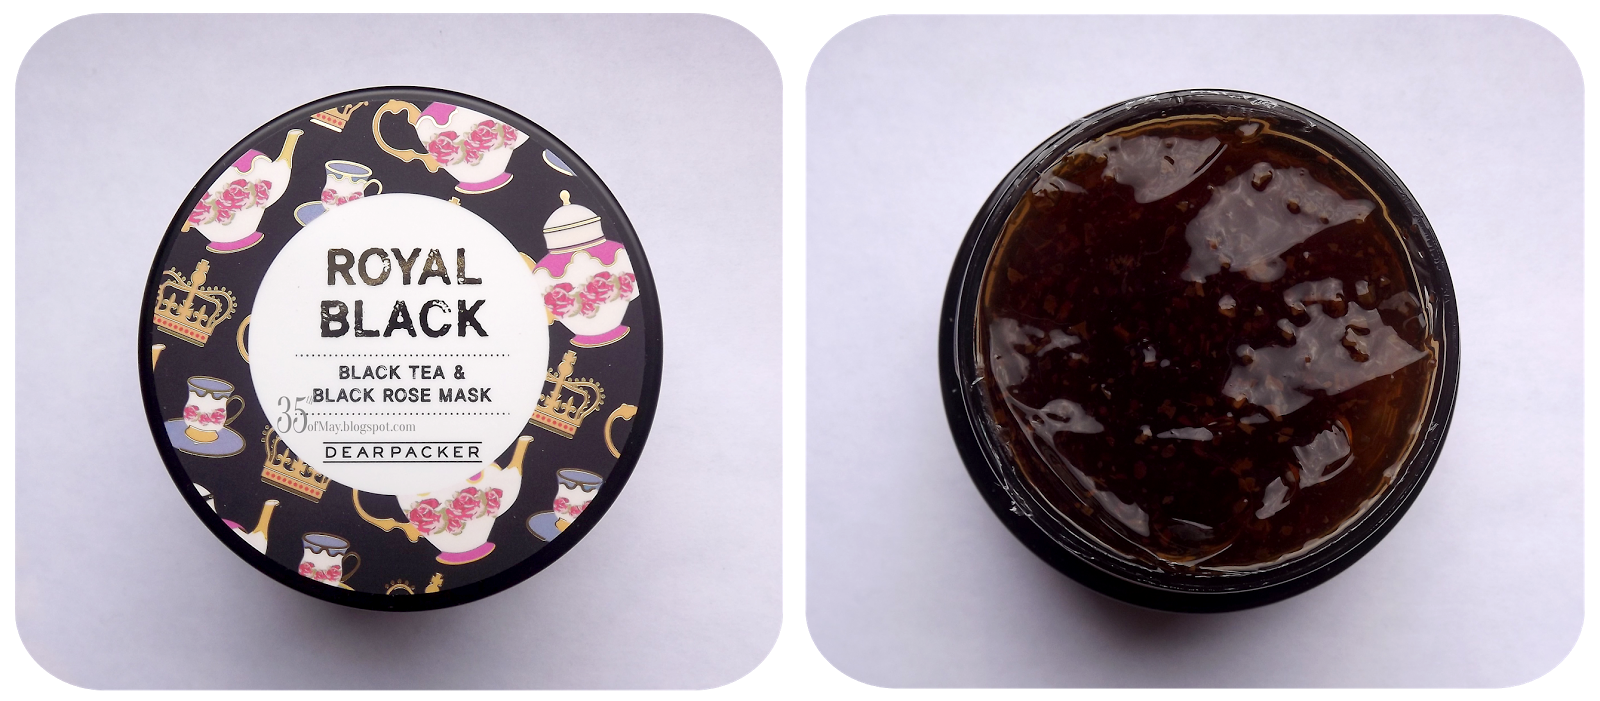 Dear Packer Royal BlackTea & Black Rose Mask review